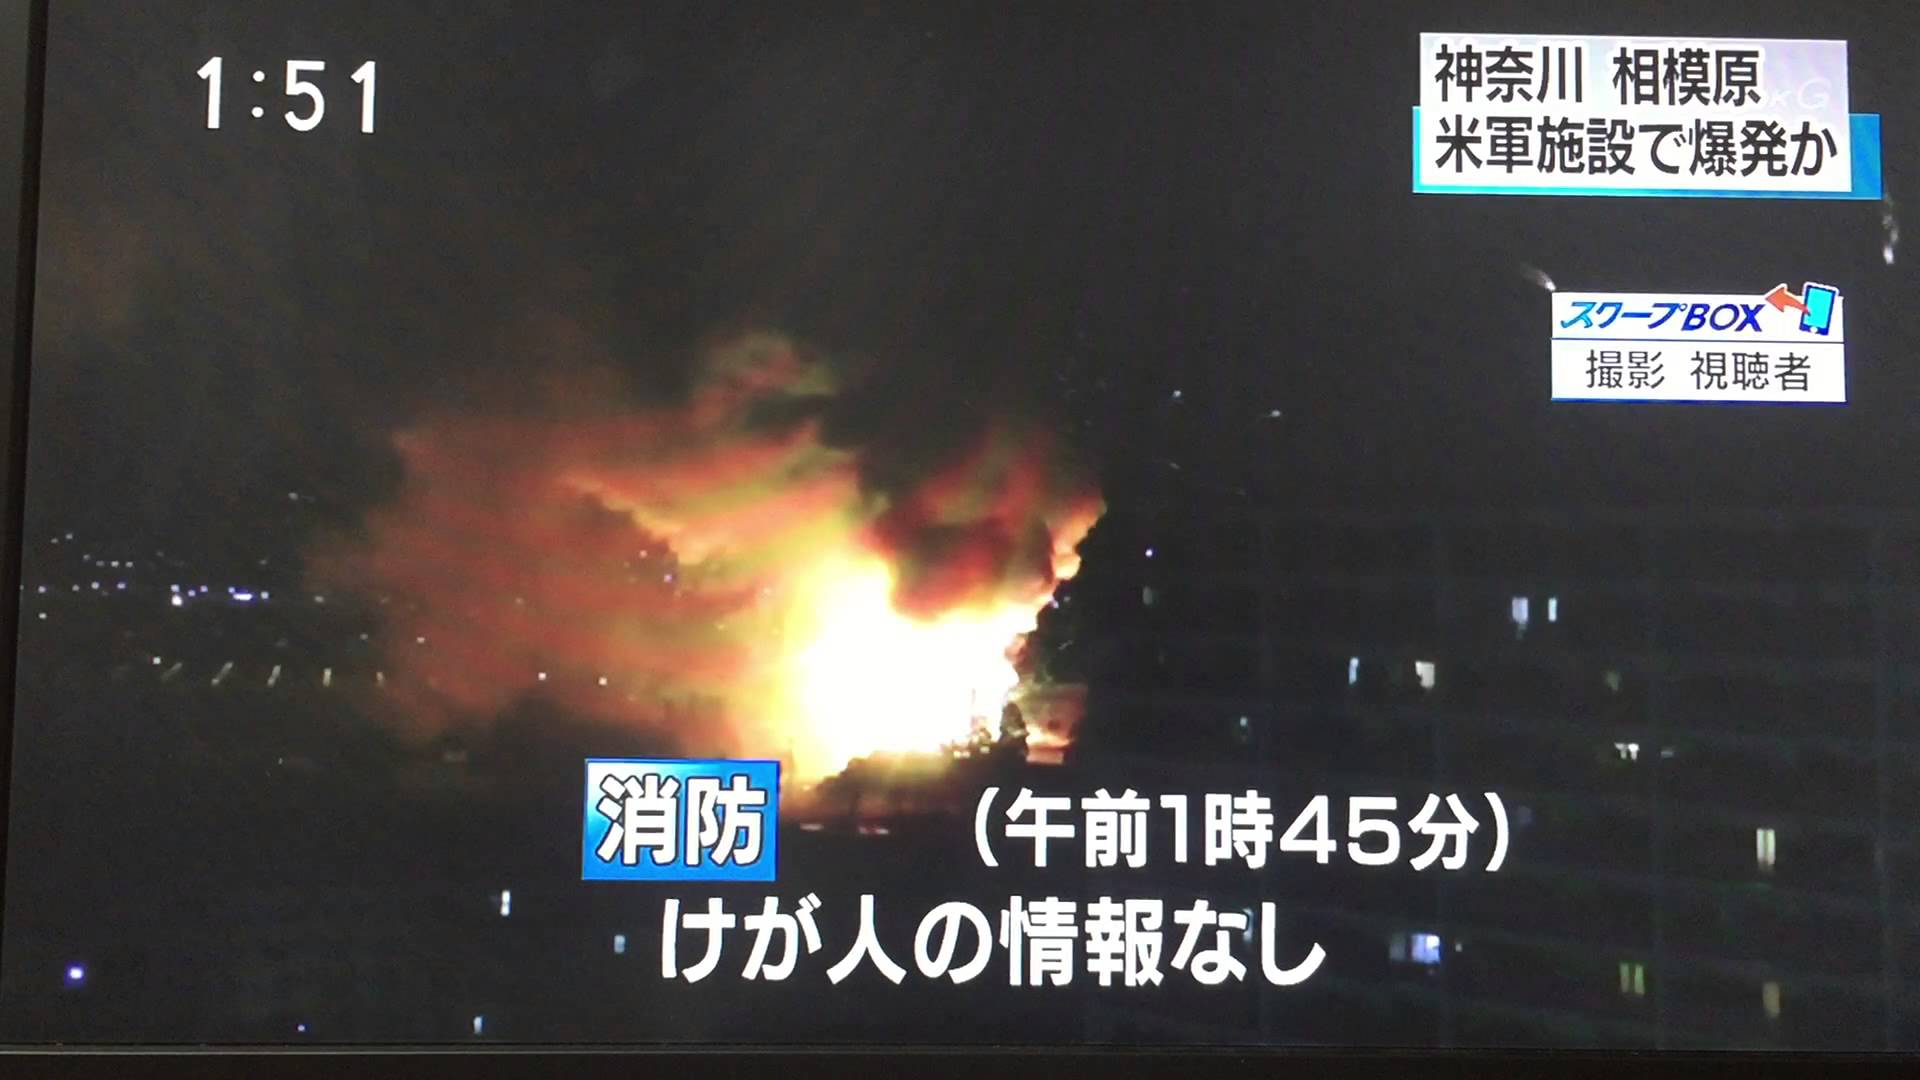 Explosions at US military base in Kanagawa, Japan